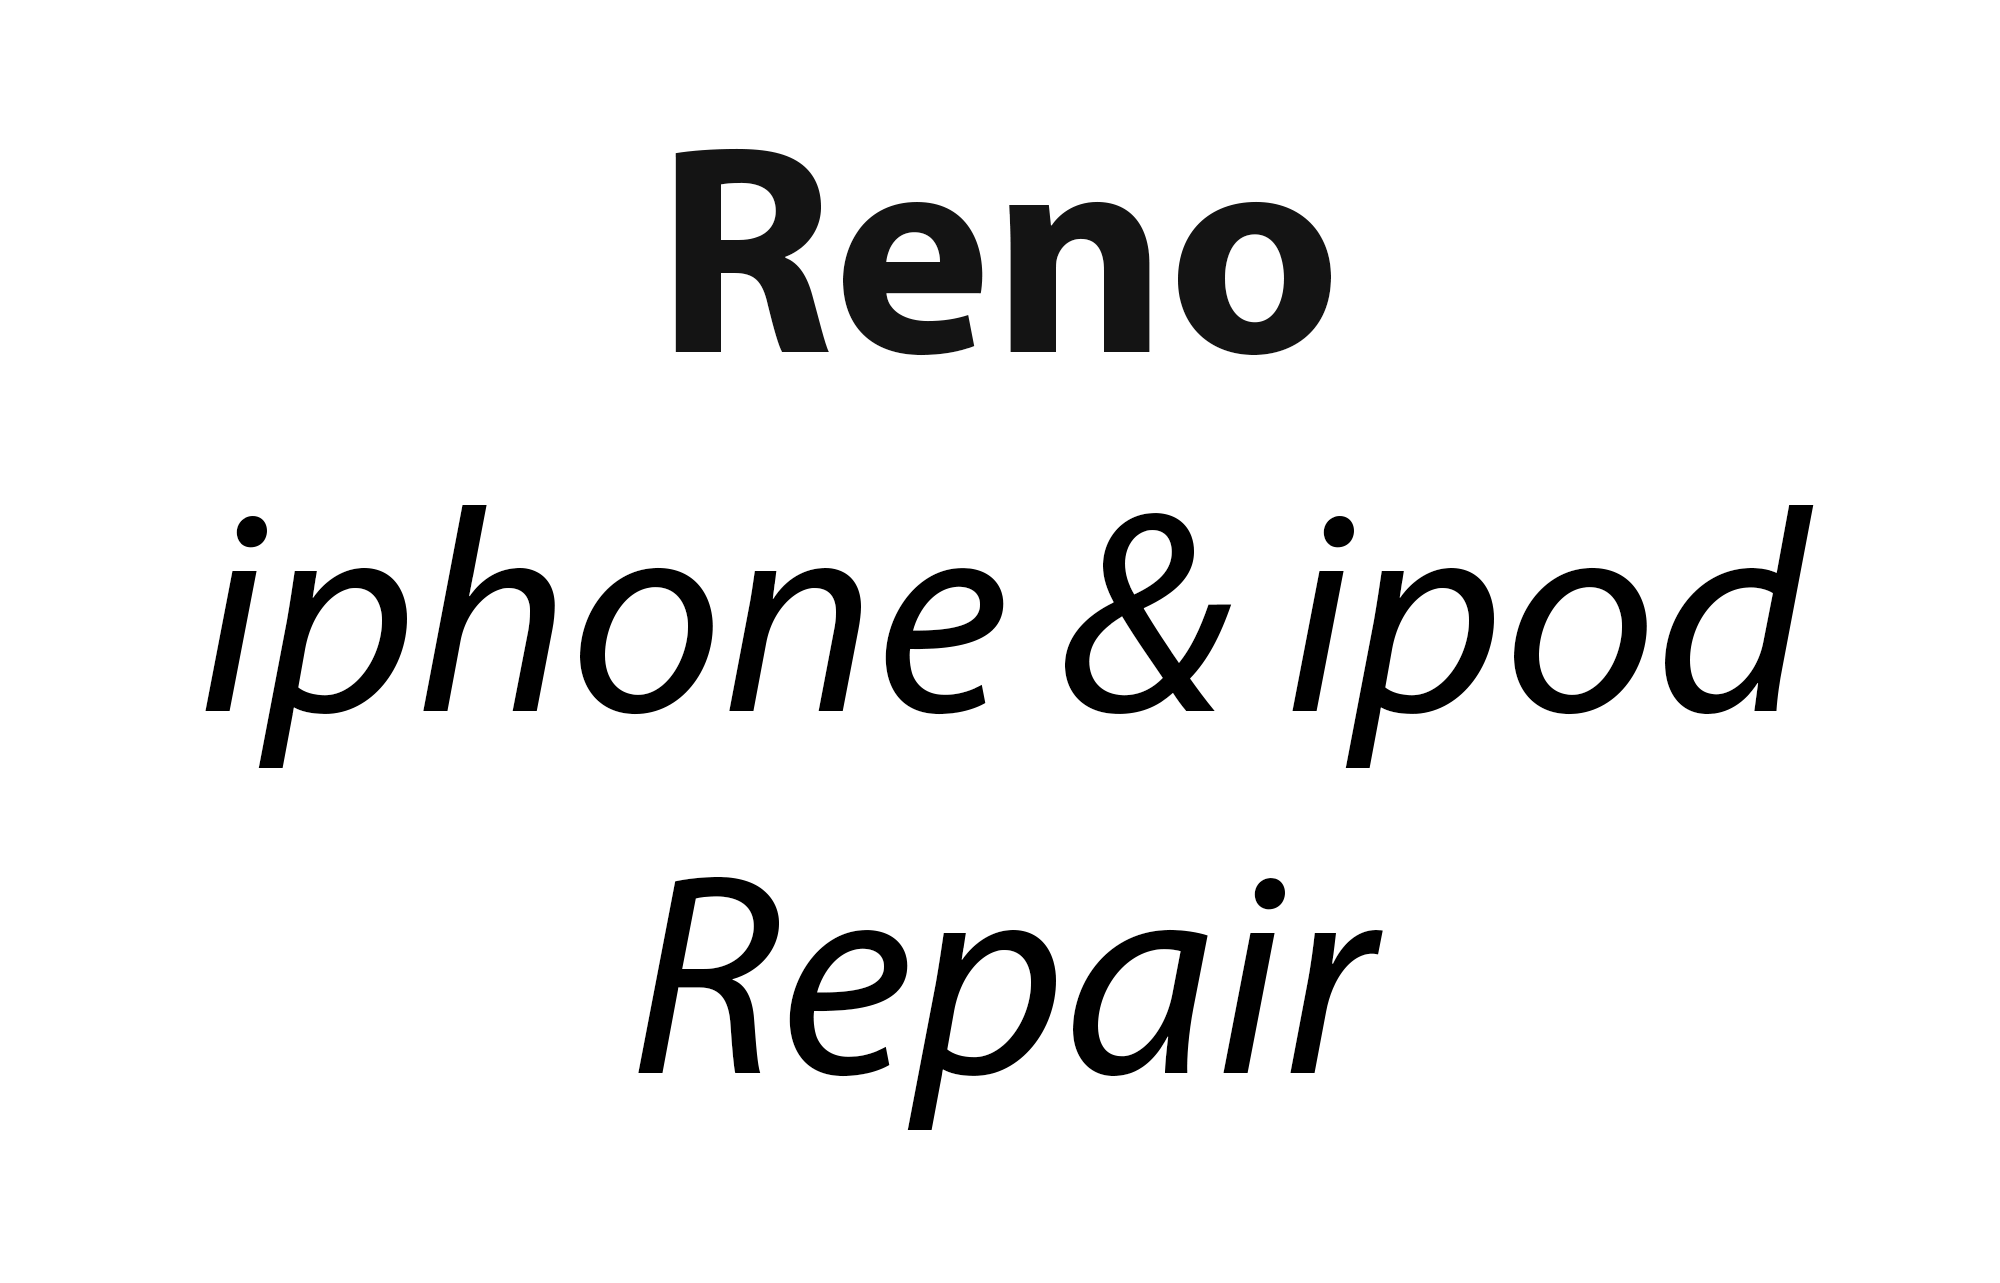 Reno Iphone Ipod Repair